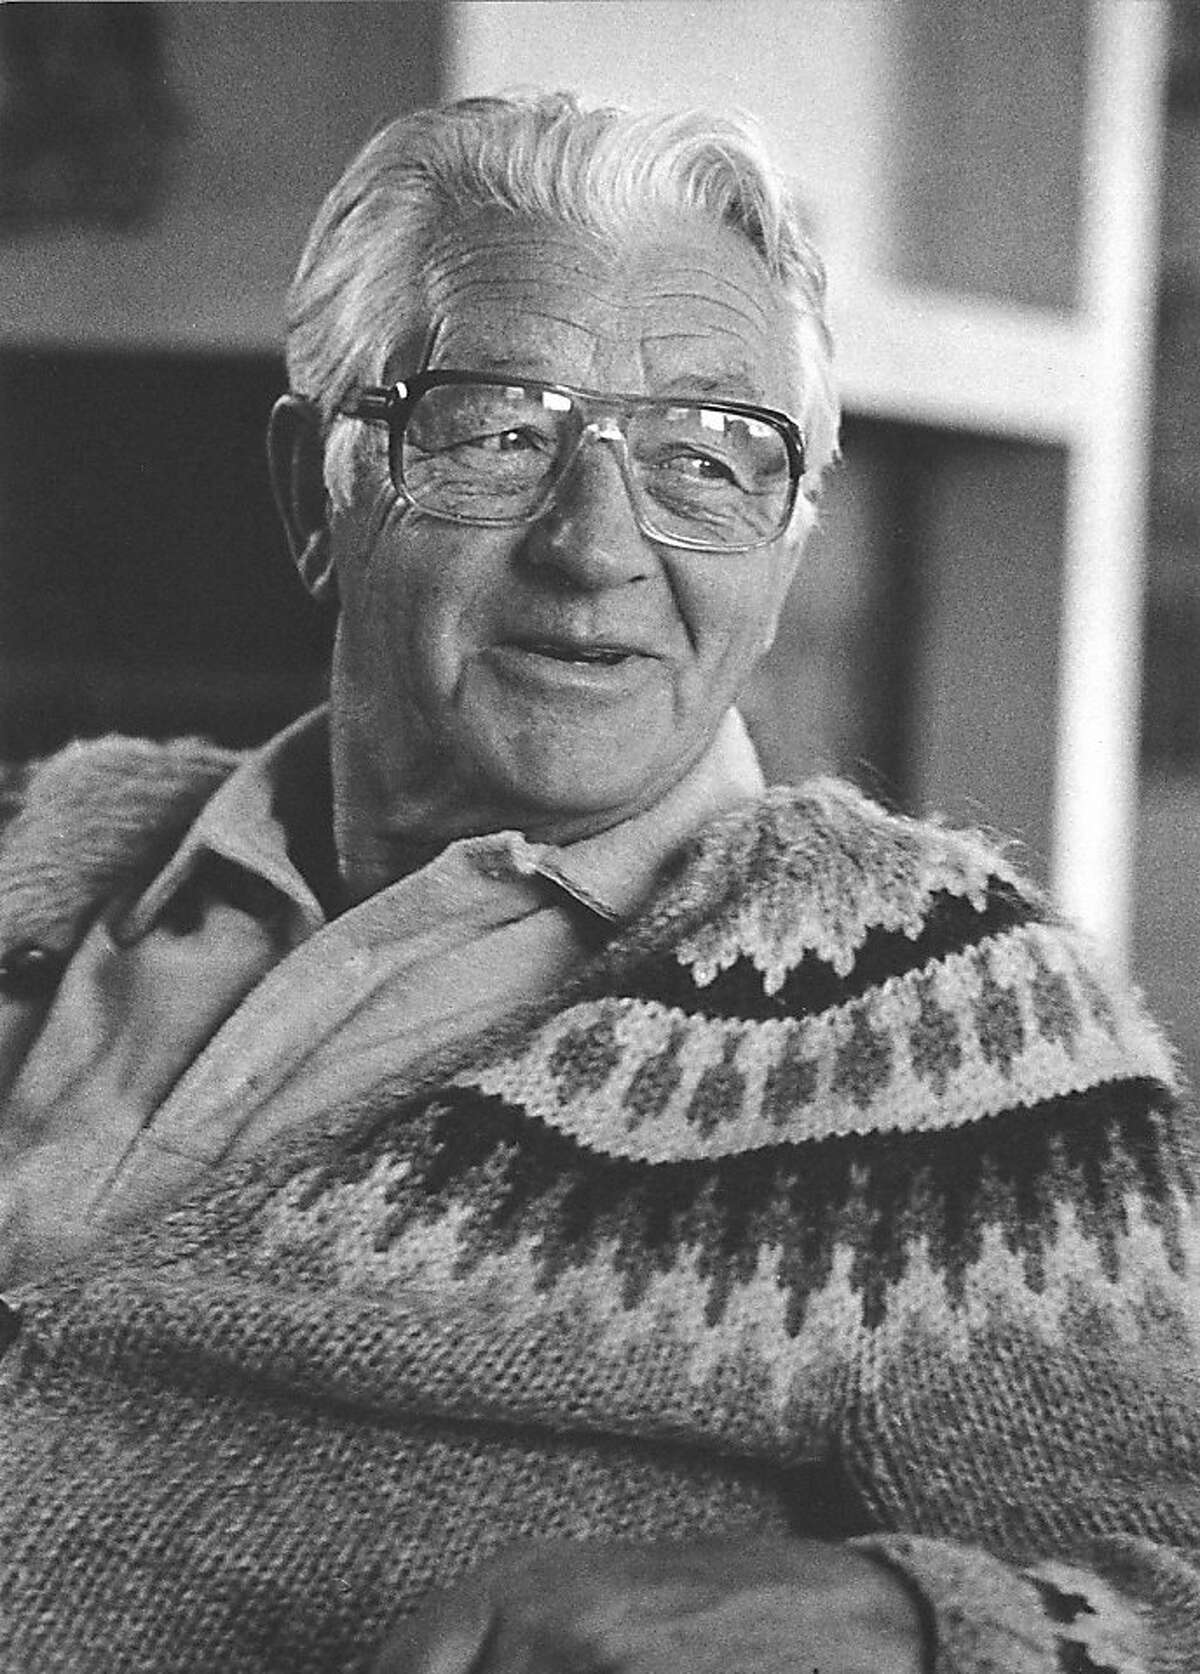 Wallace Stegner was a native of Canada who set most of his fiction in the West. He was a dedicated environmentalist. Photo Courtesy of the Los Altos History Museum